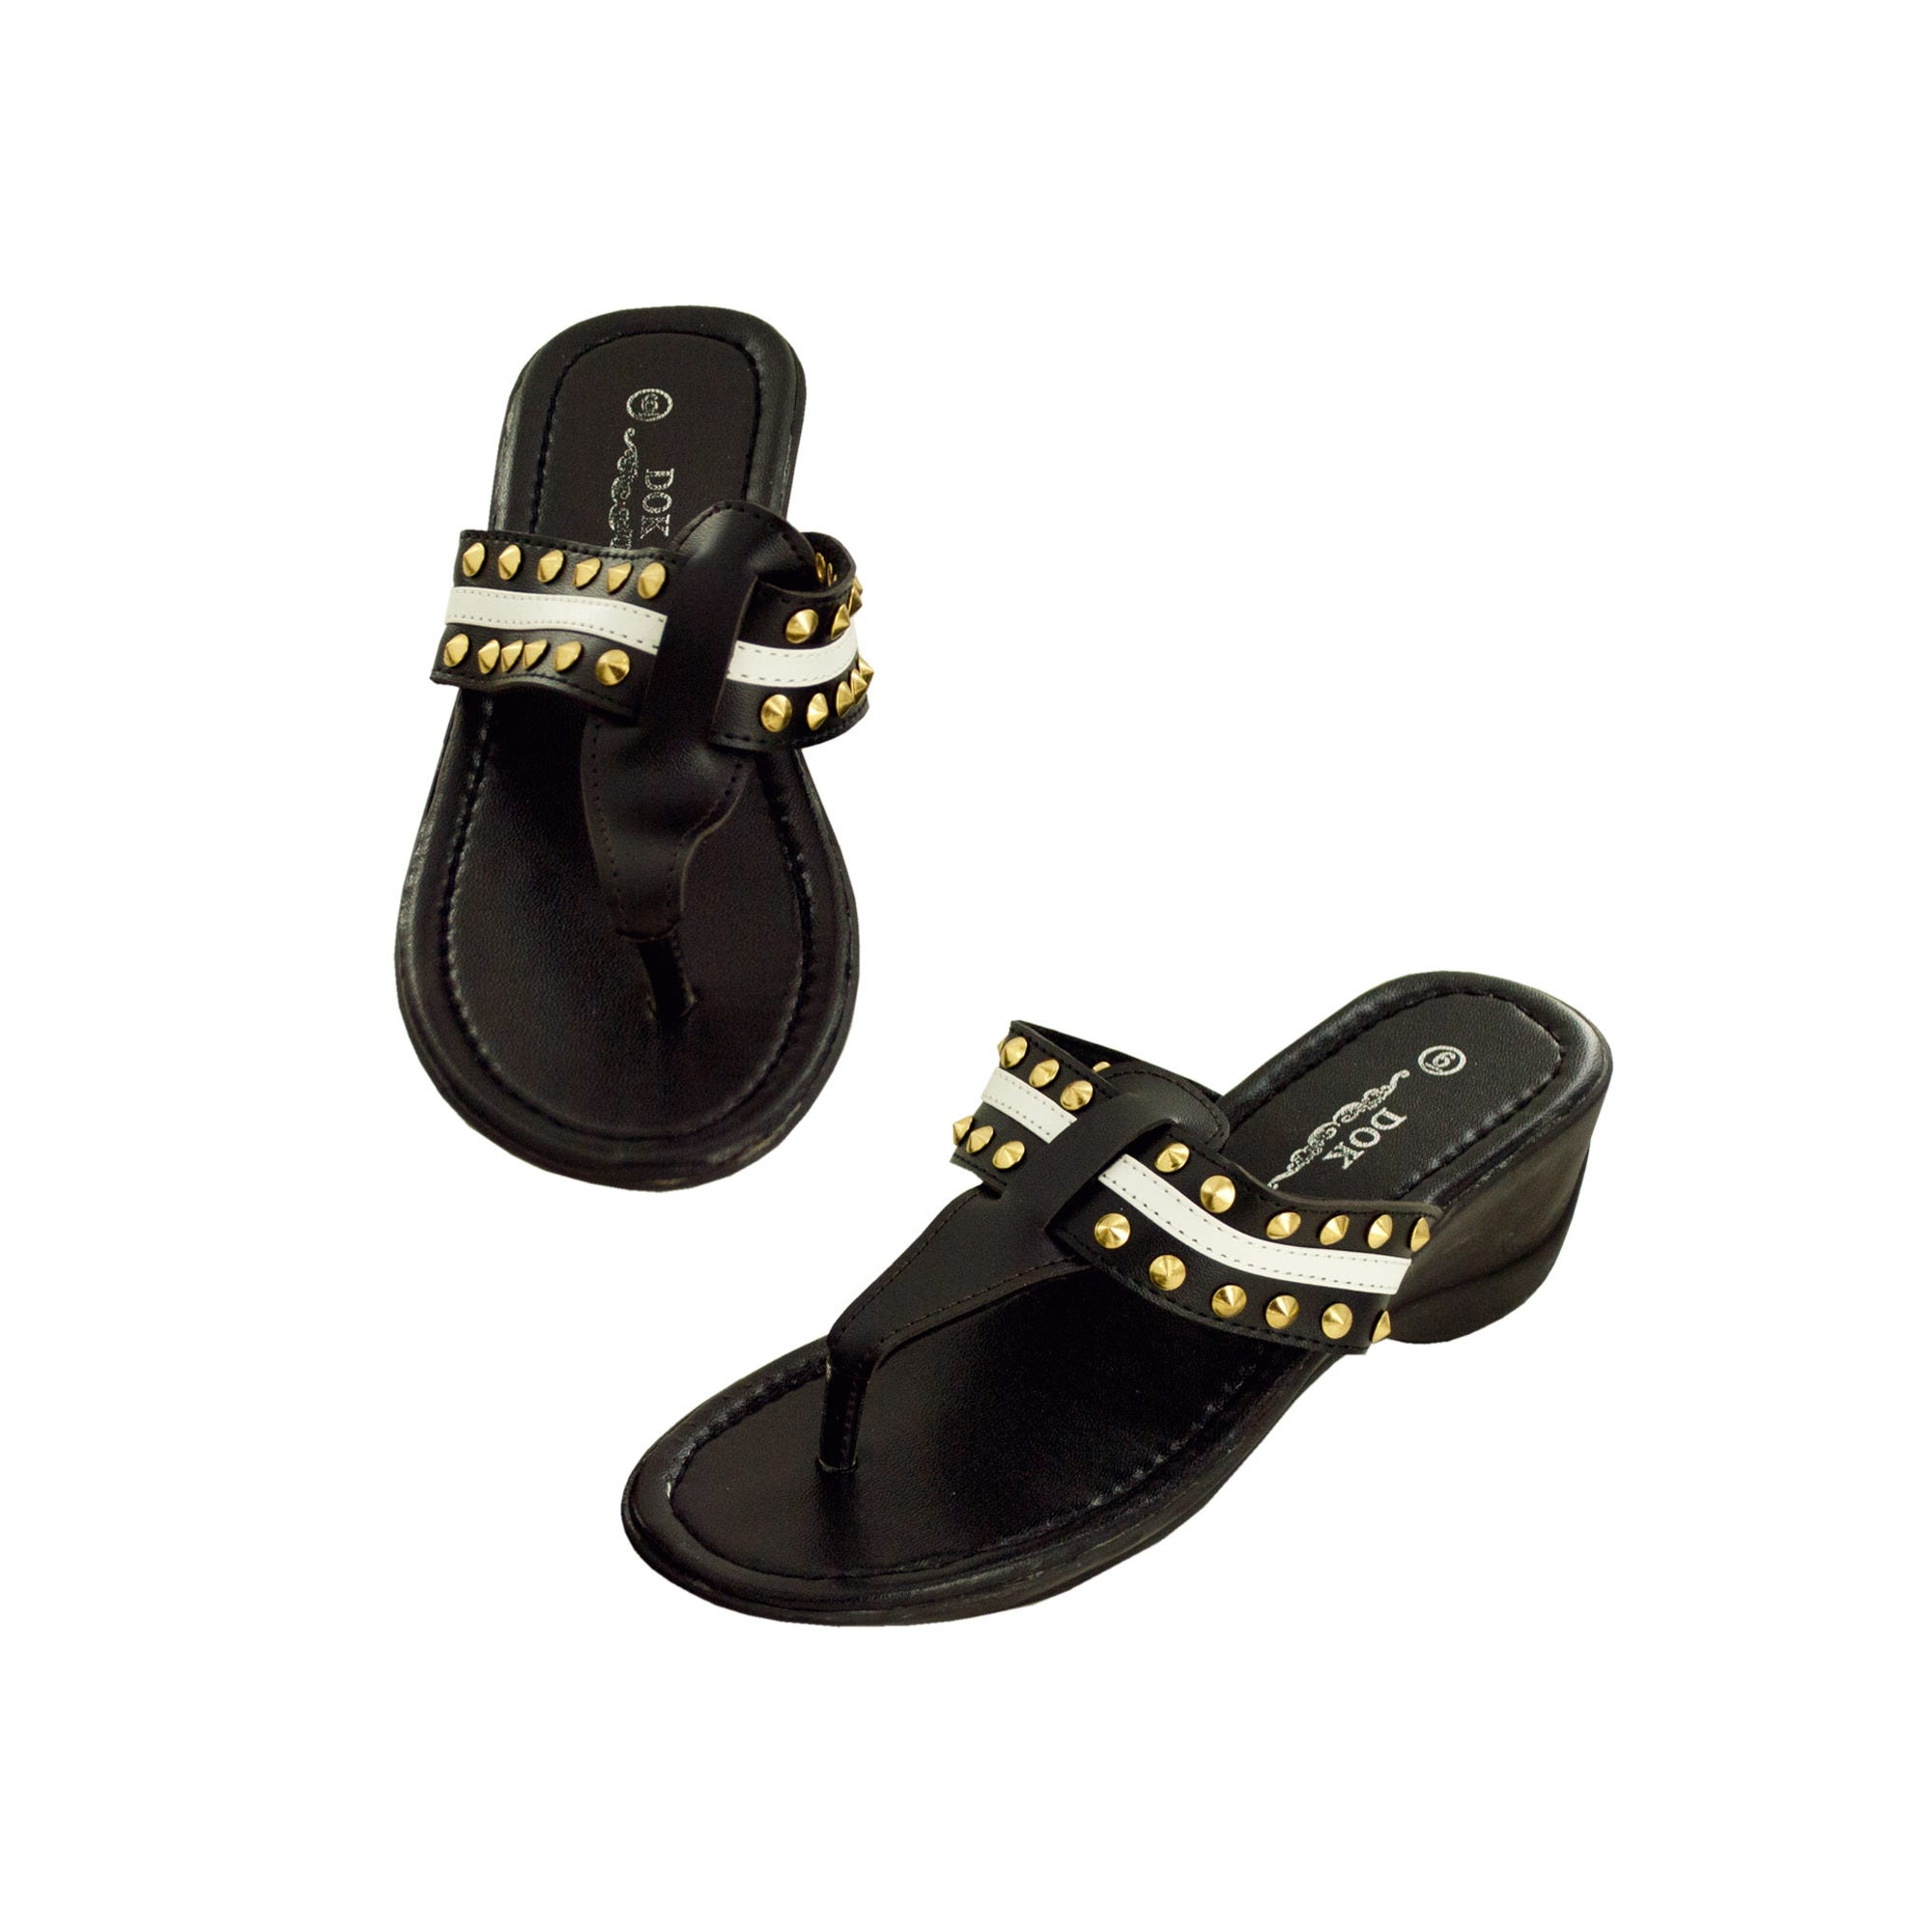 Black Wedge SANDALS with Stripe & Spike Accents- Qty 6